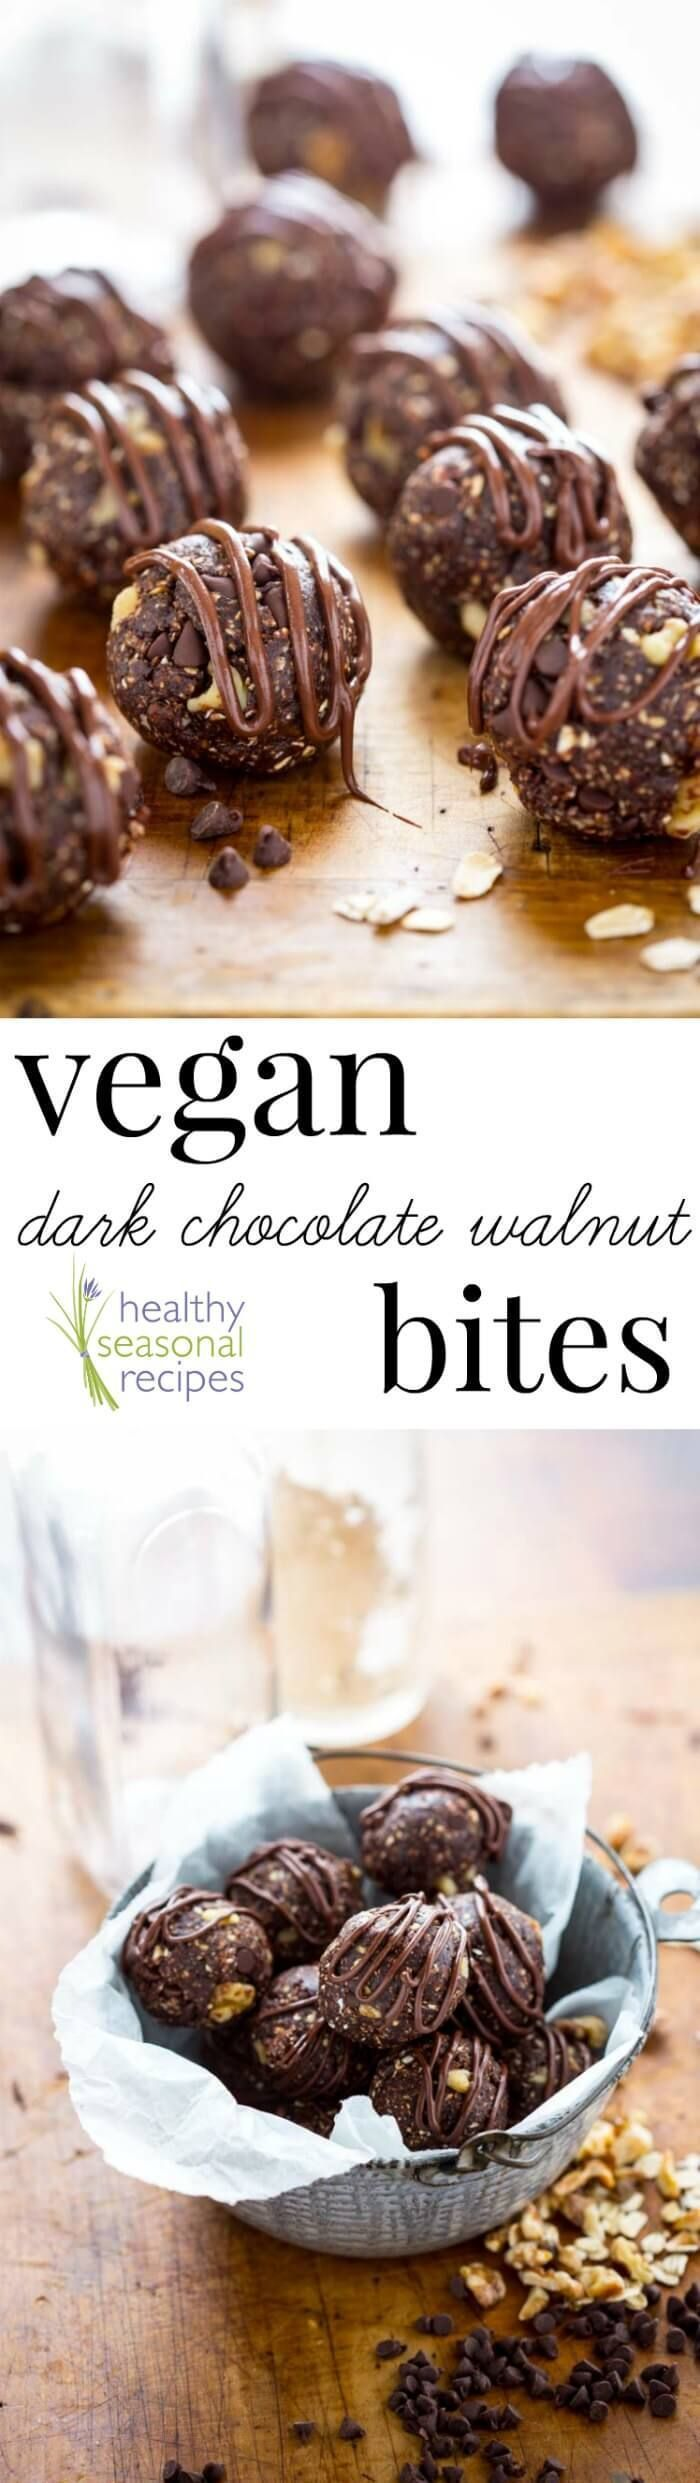 Sponsored: Healthy Seasonal Recipes : These Vegan Dark Chocolate Walnut Bites are a super simple and healthy snack and will satisfy your chocolate cravings in only 15 minutes! [..]